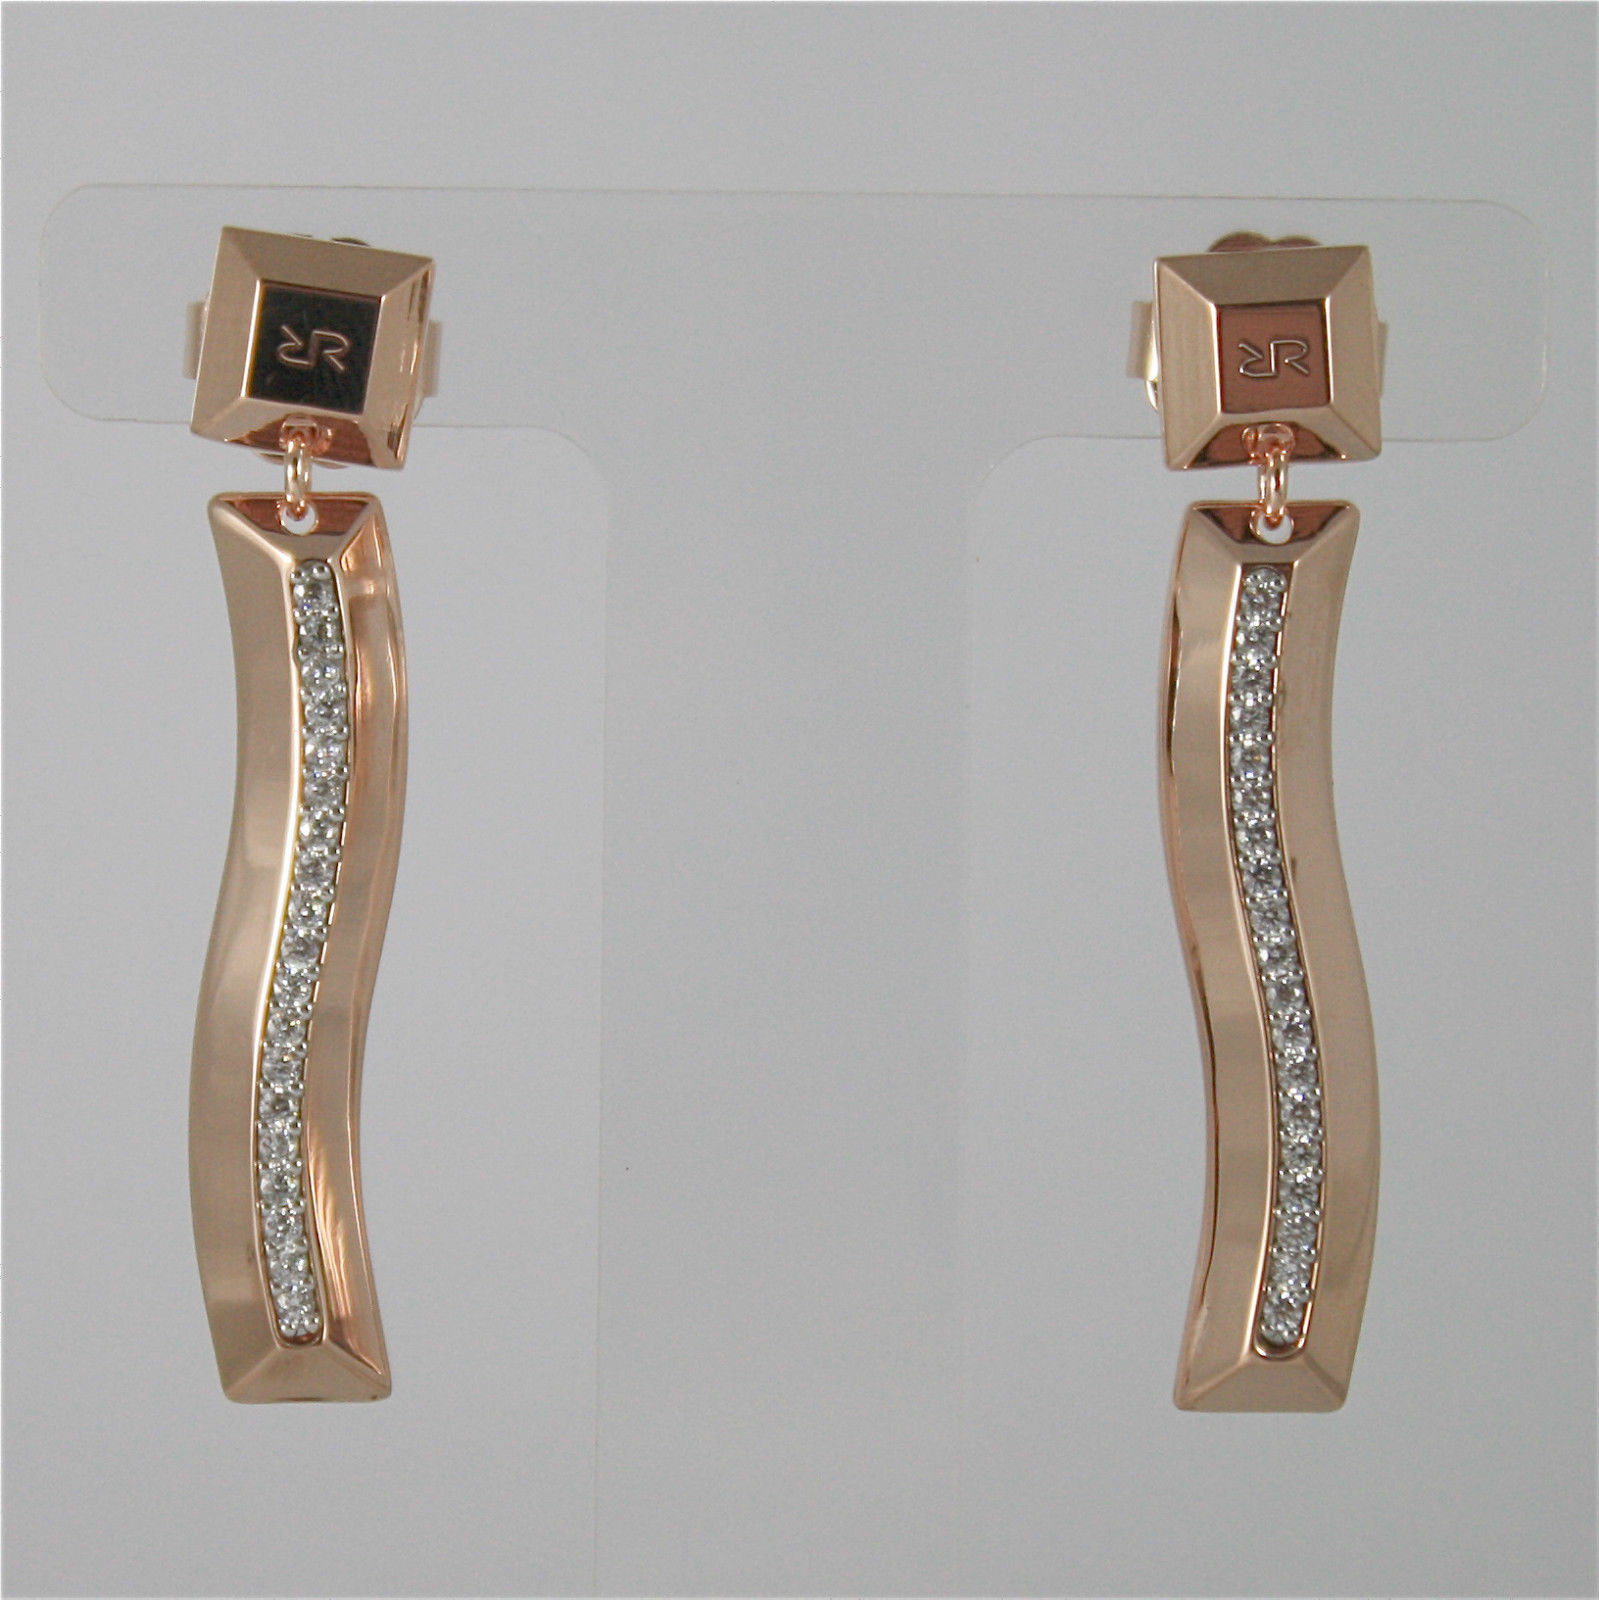 ROSE GOLD PLATED BRONZE REBECCA EARRINGS SAHARA BSAORZ34 MADE IN ITALY CRYSTAL